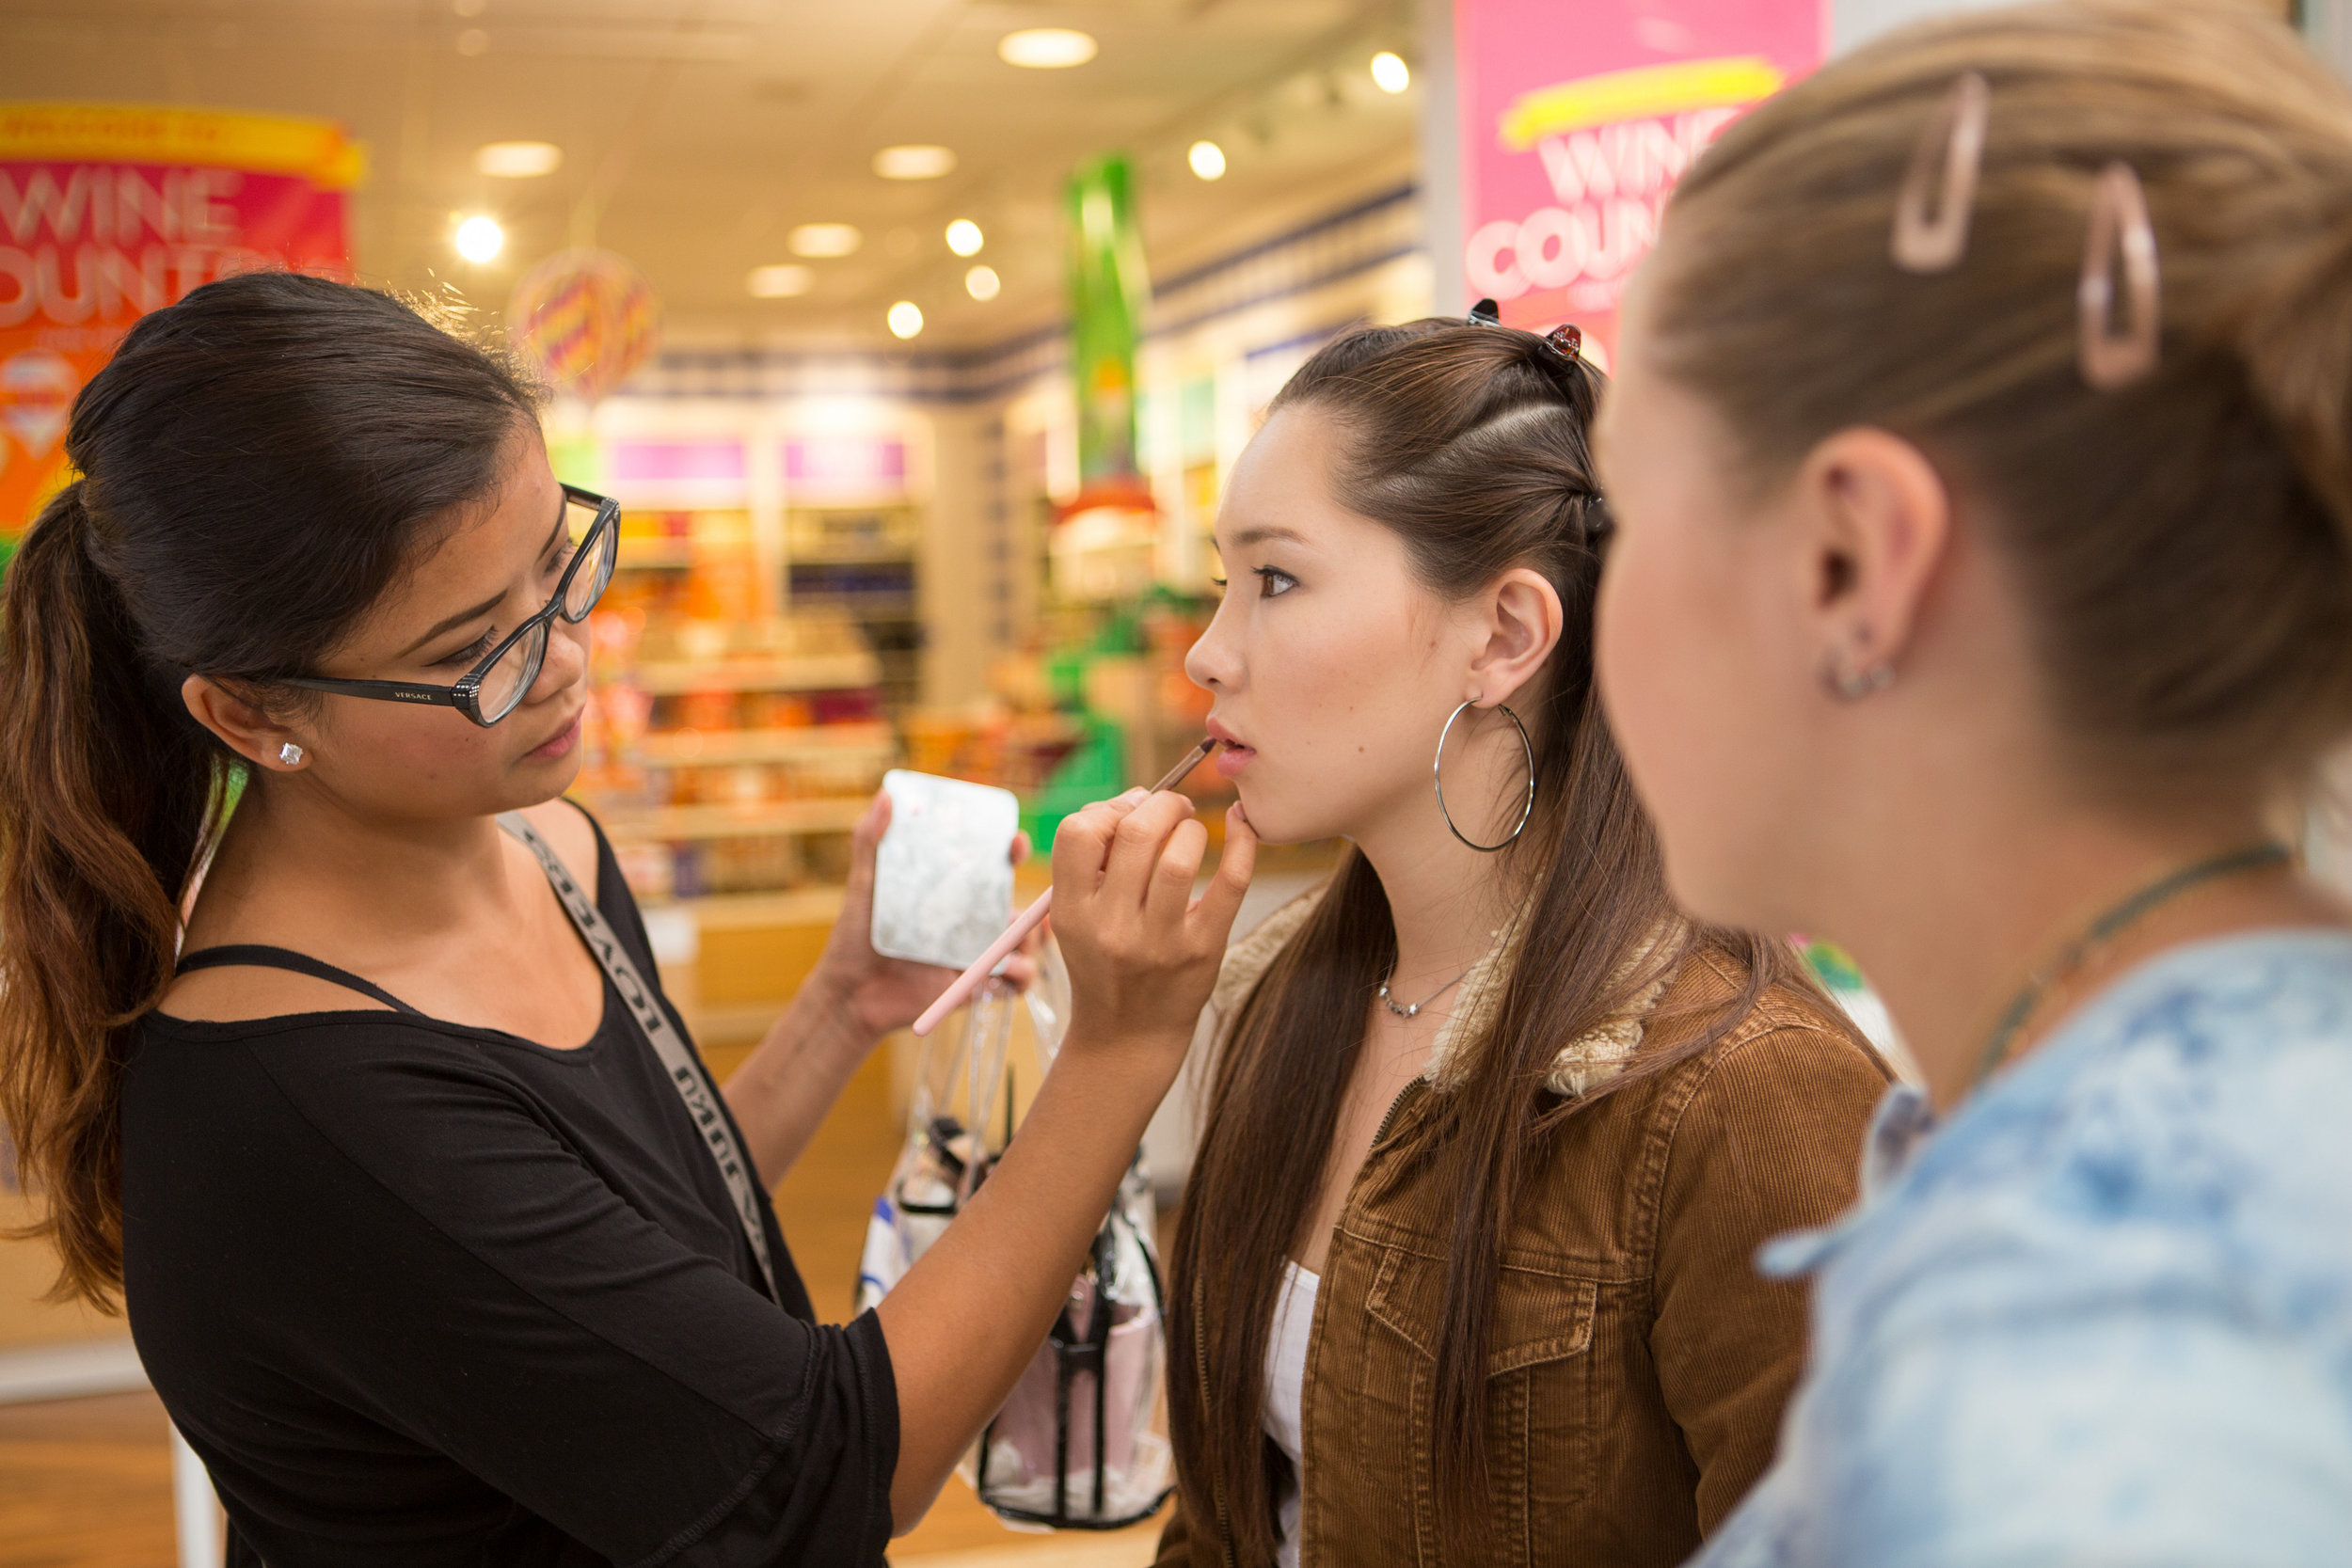 The talented Roczane, MUA touching up Evelyn Warner